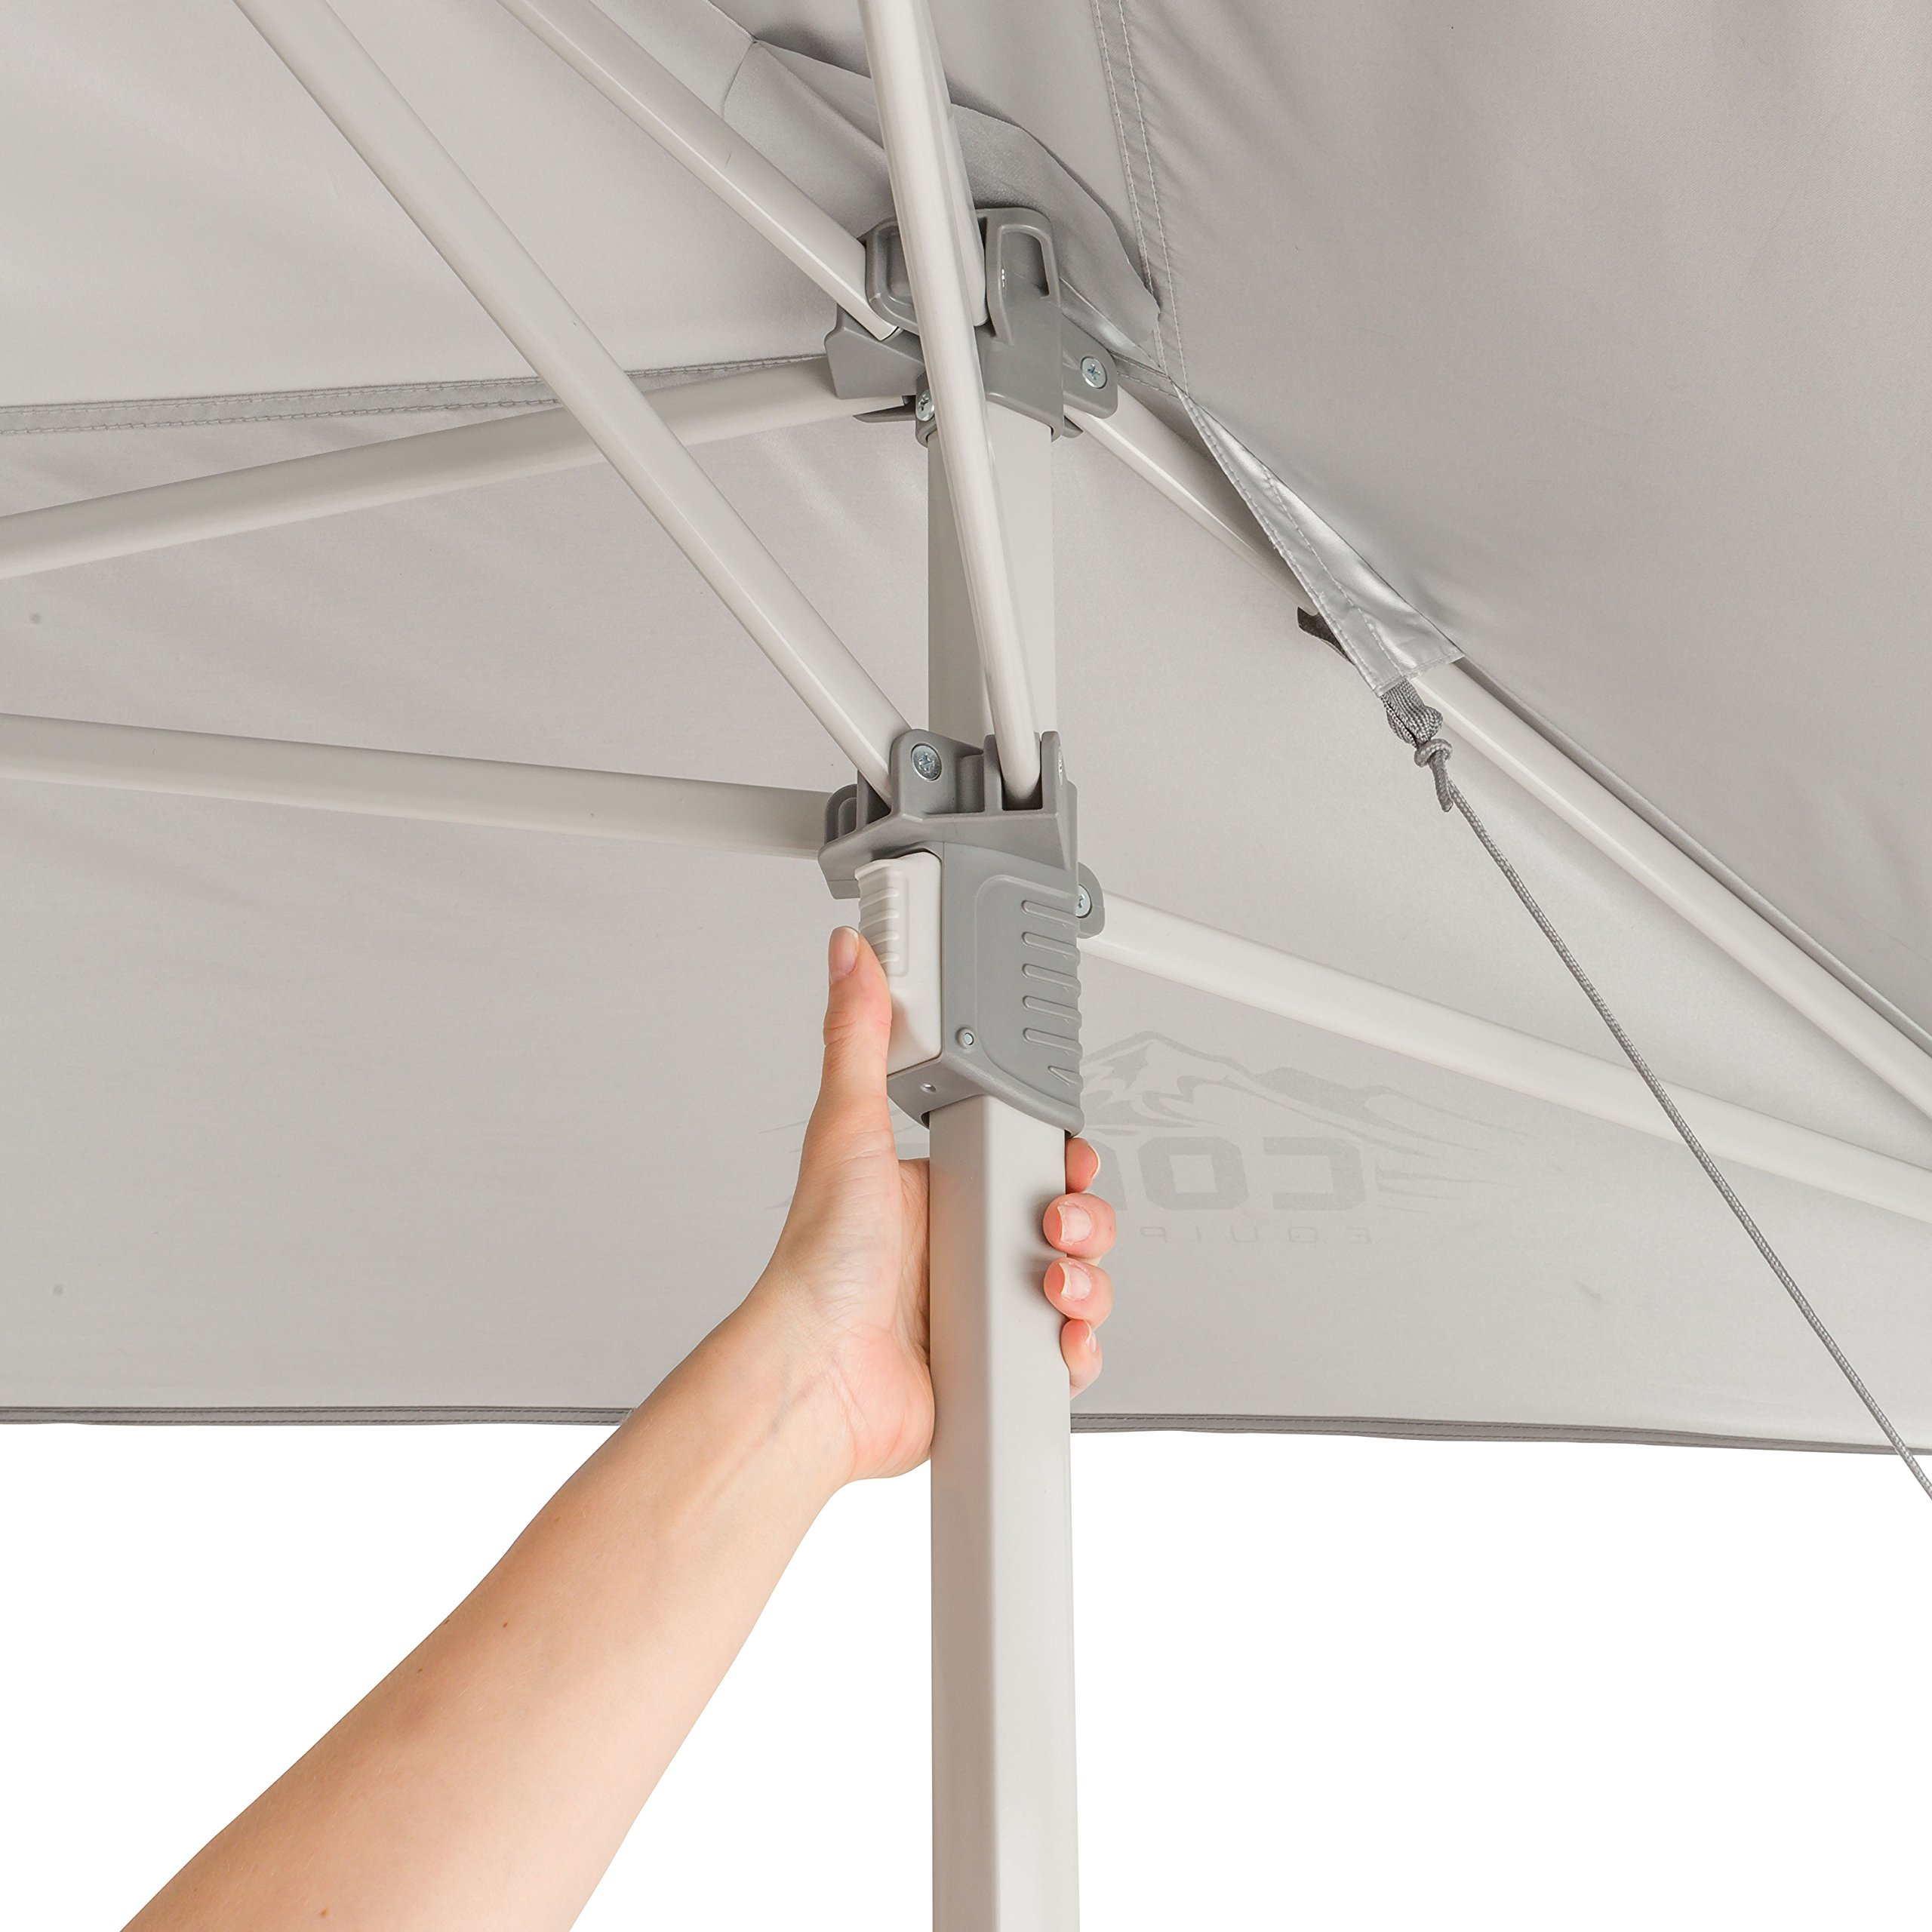 CORE 13' x 13' Instant Shelter Pop Up Canopy Gazebo Tent for Shade in Backyard, Party, Event with Wheeled Carry Bag, Gray by CORE (Image #5)